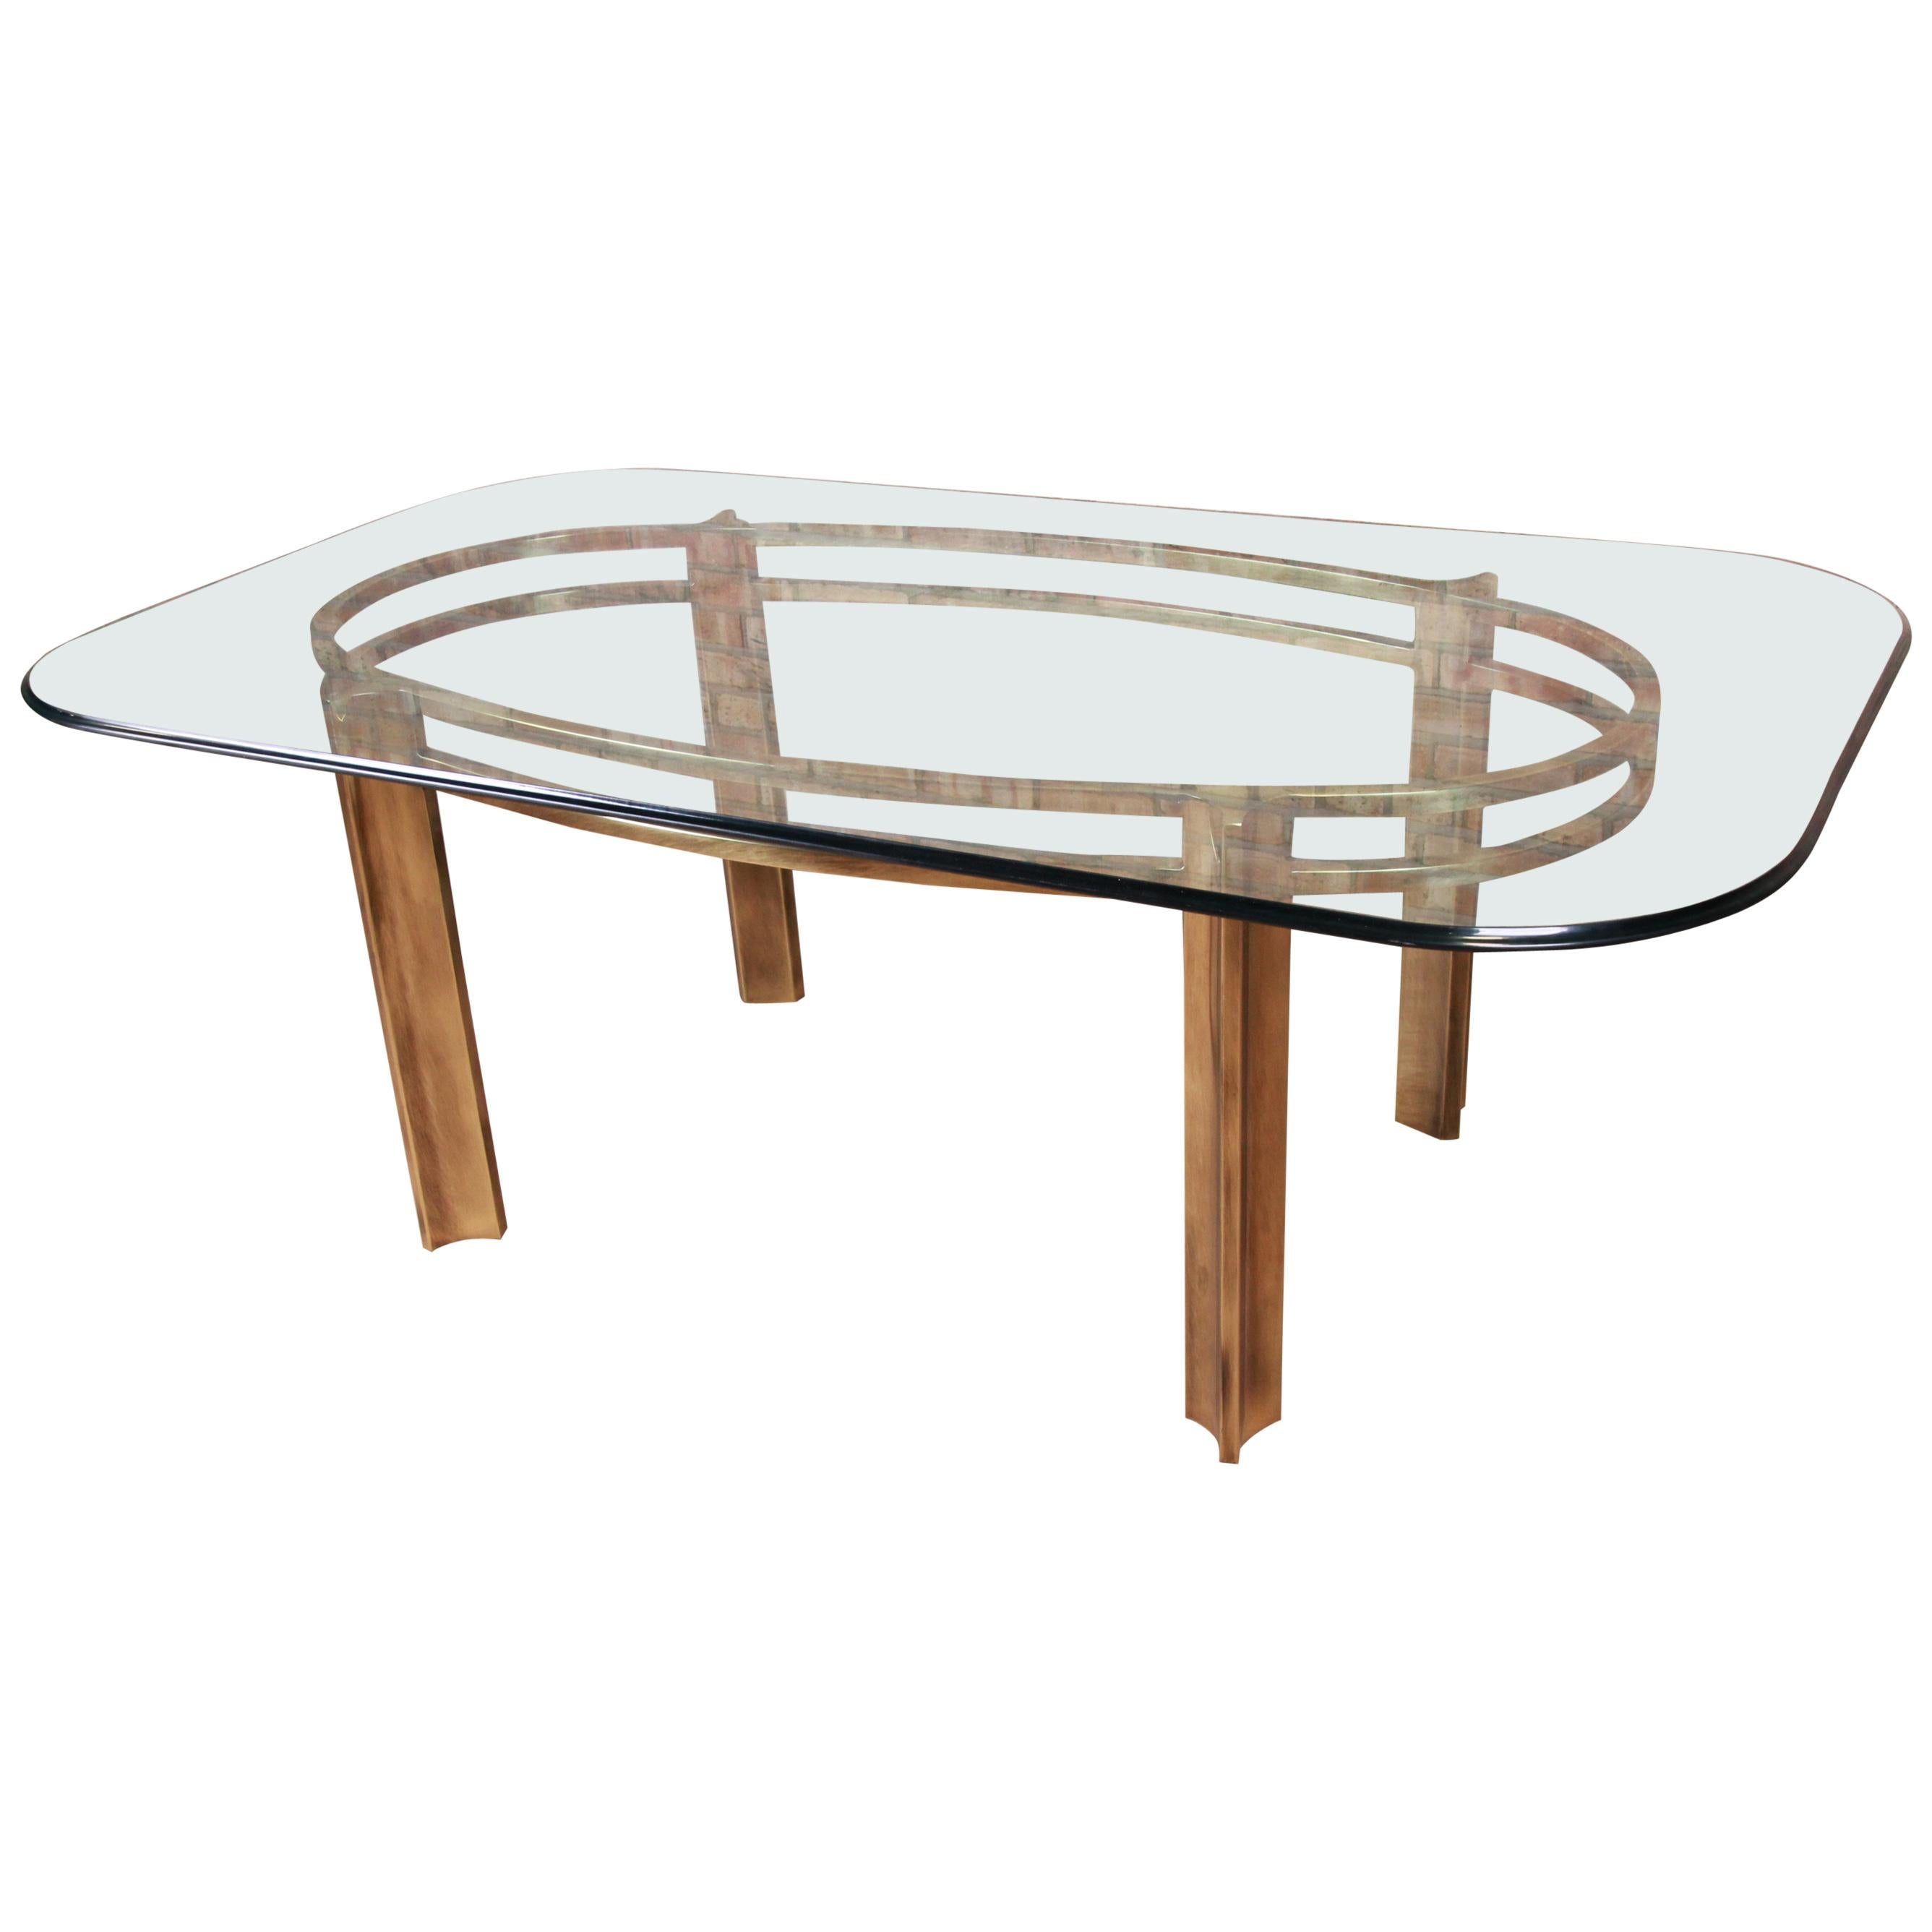 Mastercraft for Baker Furniture Hollywood Regency Brass and Glass Dining Table